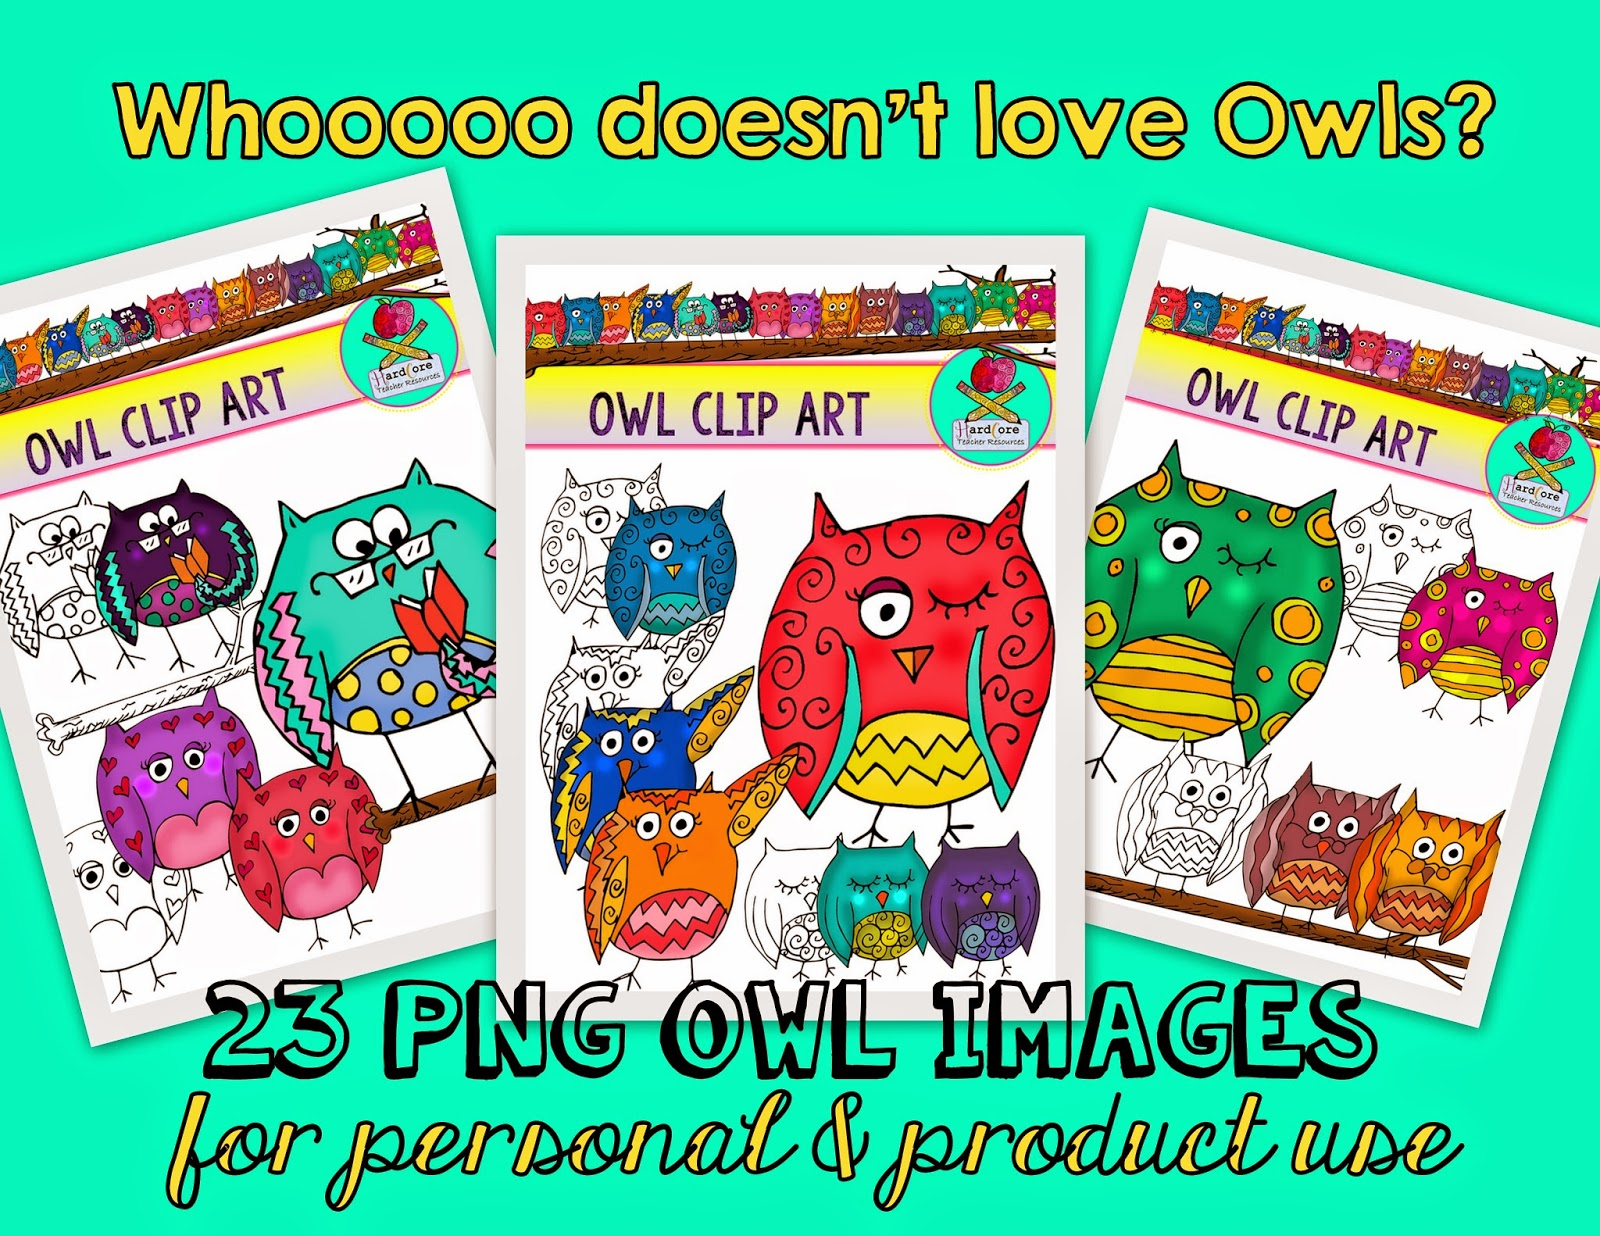 http://www.teacherspayteachers.com/Product/Owl-Clip-Art-23-PNG-CLIP-ART-IMAGES-Whooooo-doesnt-love-Owls-1363064